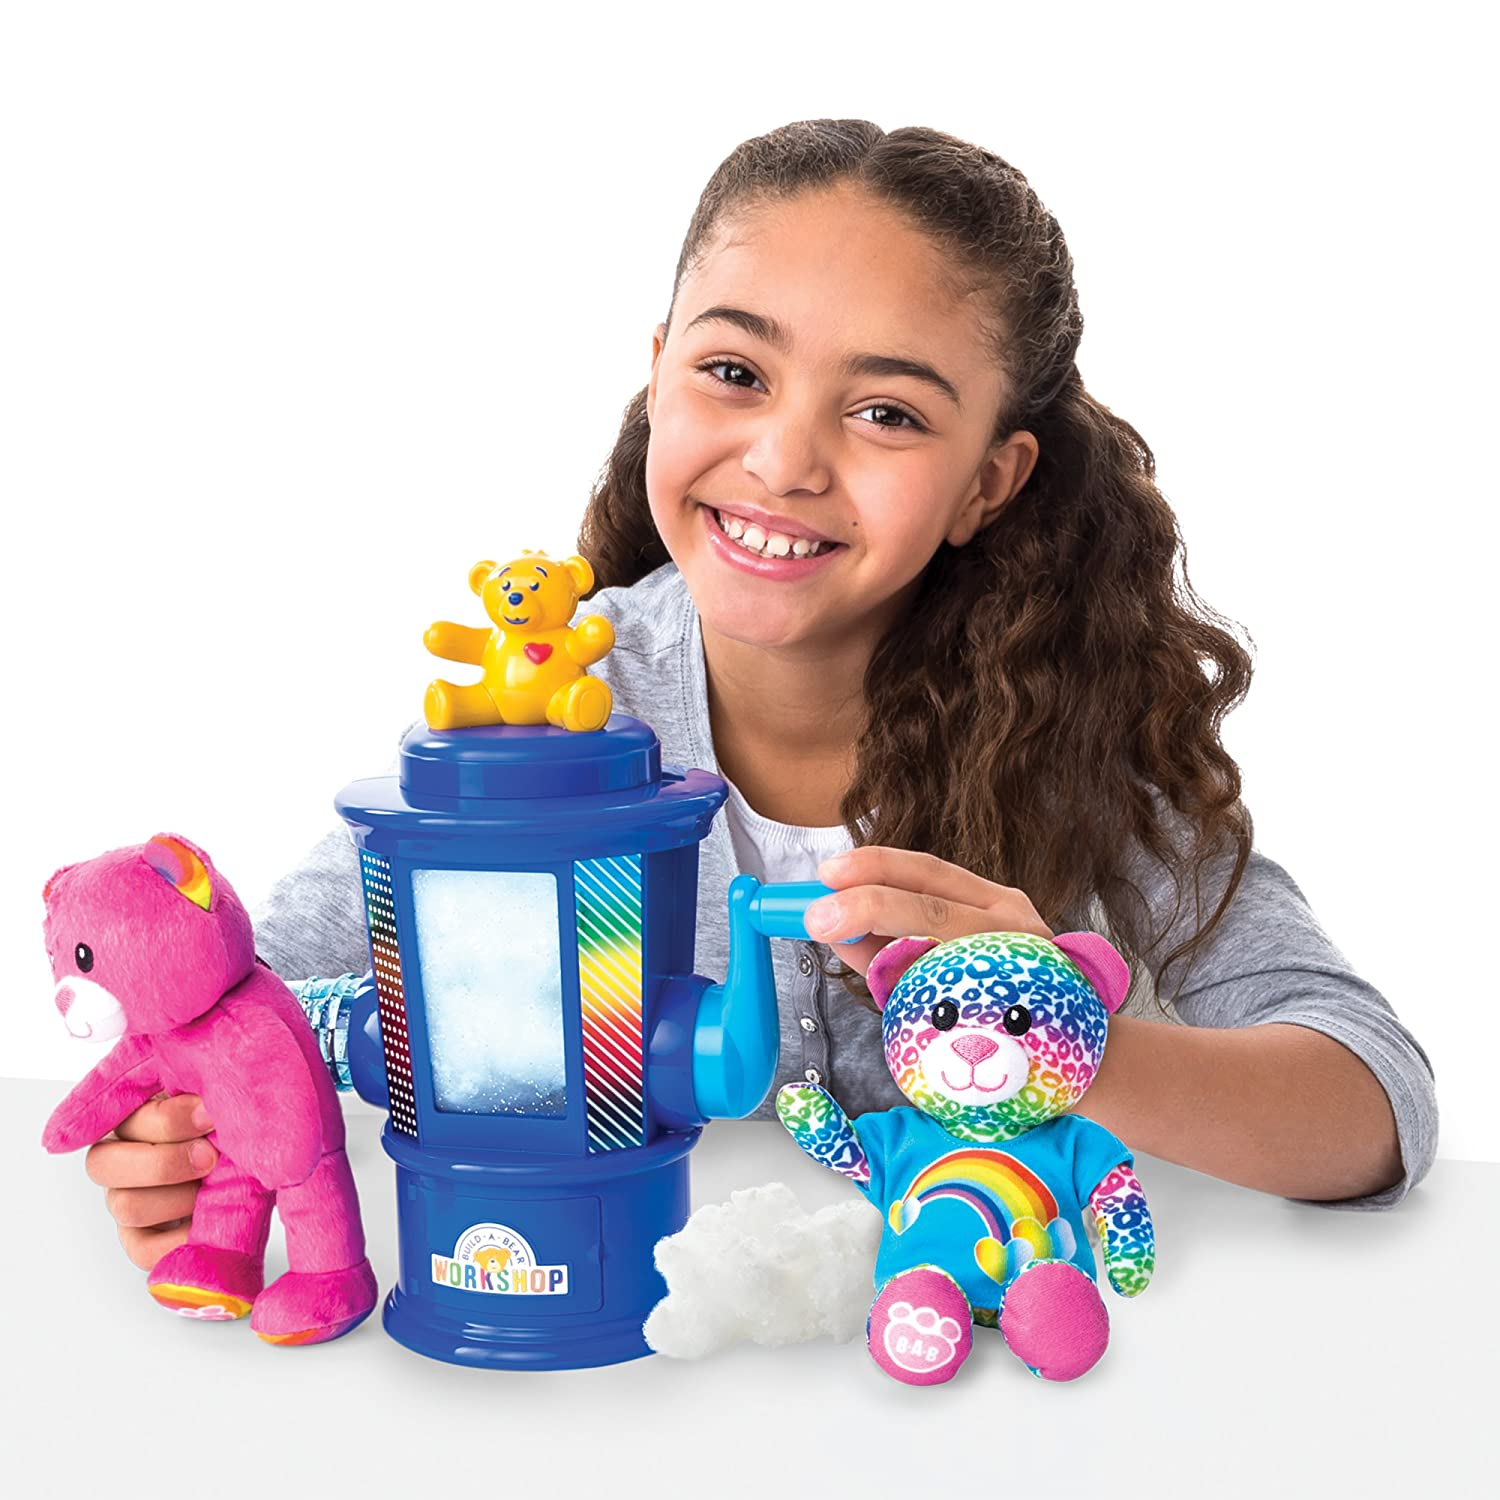 Build A Bear Christmas 2019.Build A Bear Workshop Stuffing Station By Spin Master Edition Varies